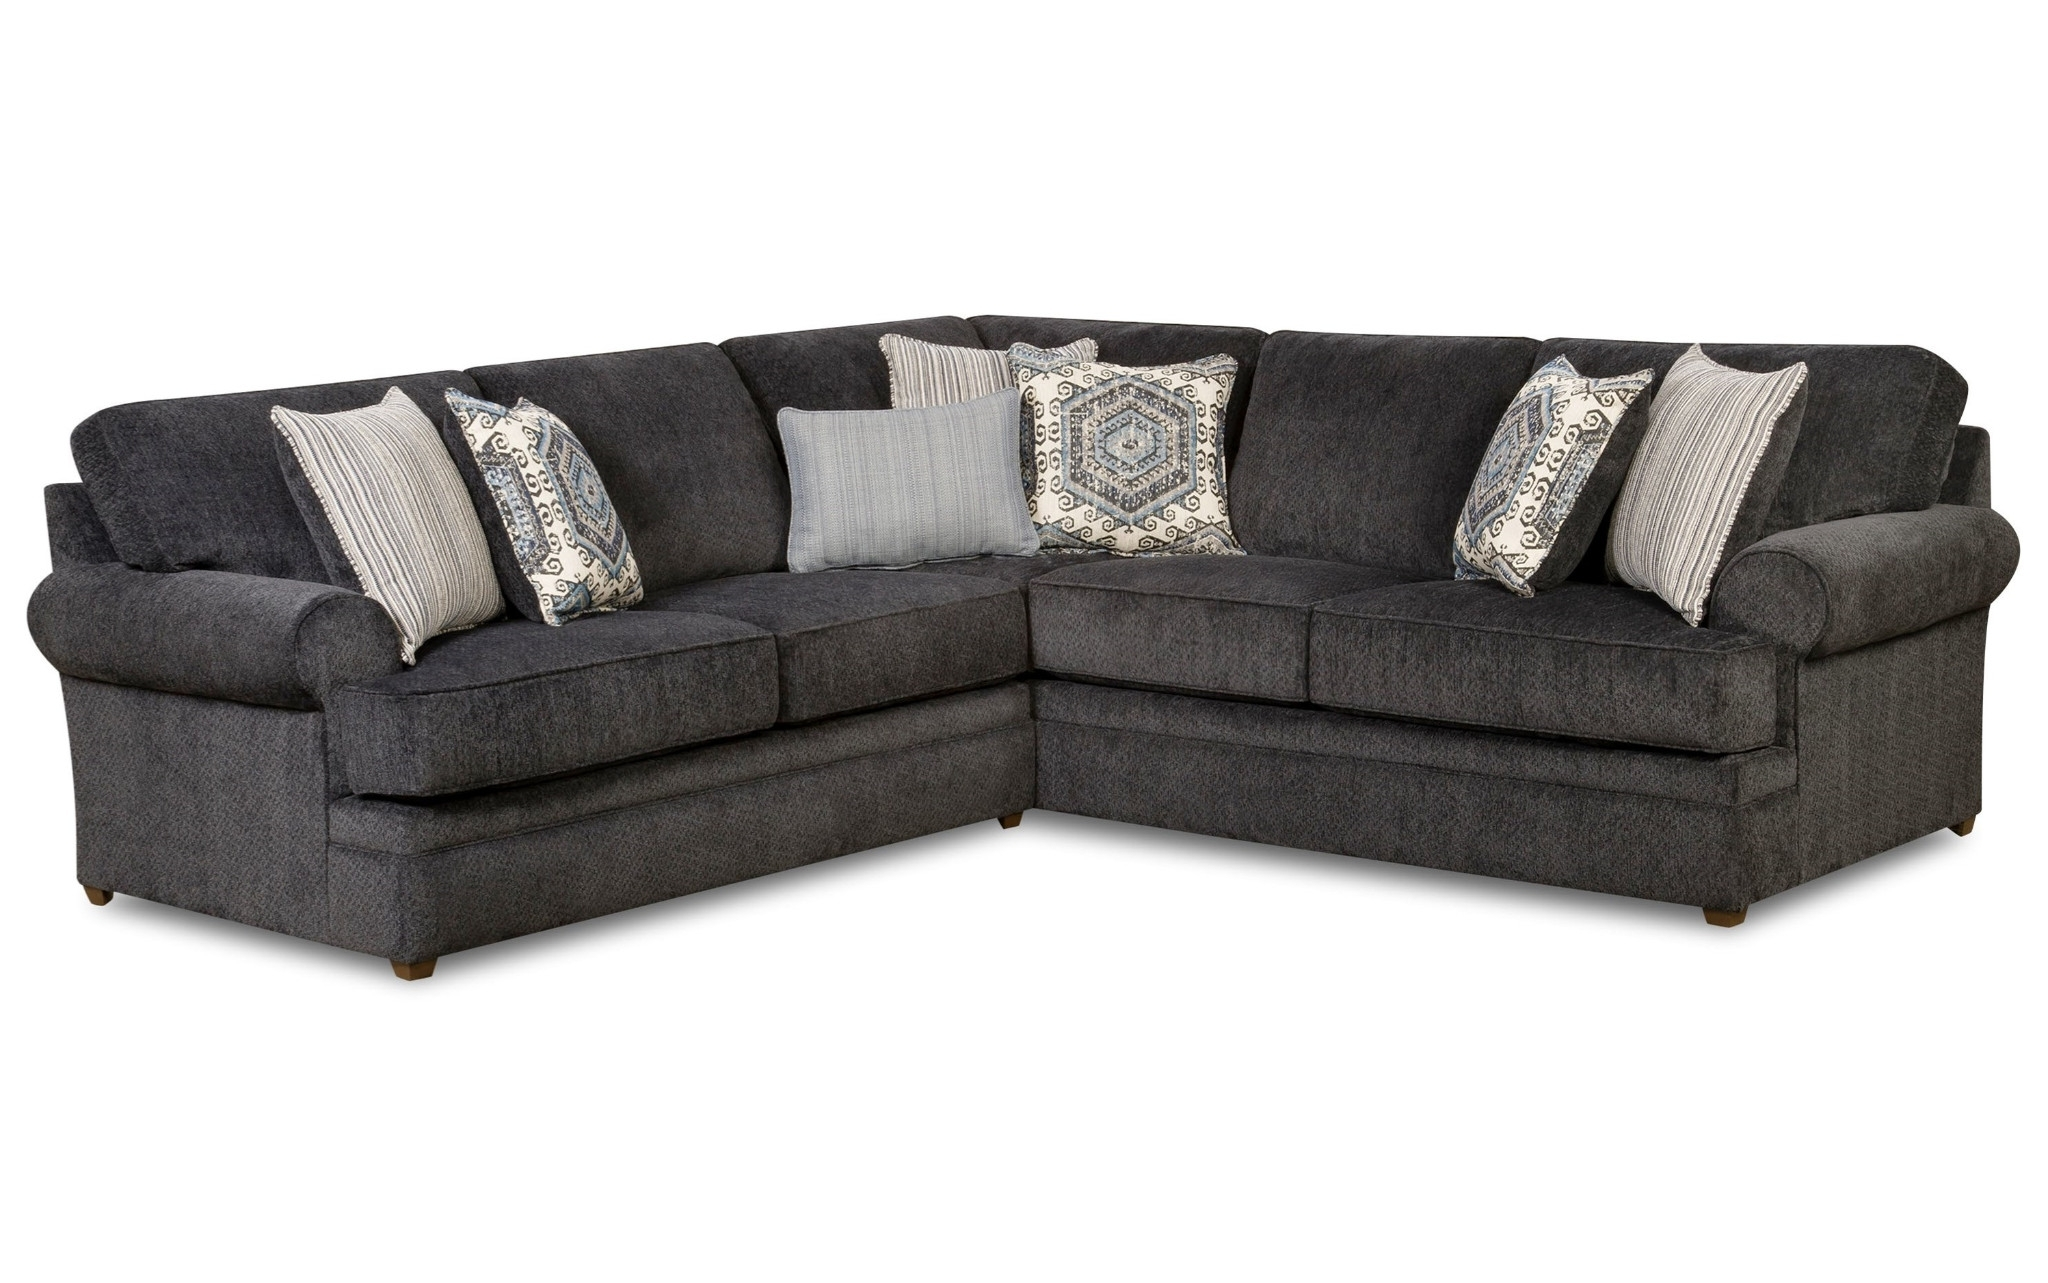 Bellamy Slate 2 Piece Sectional Beauty Restsimmons $ (View 16 of 20)